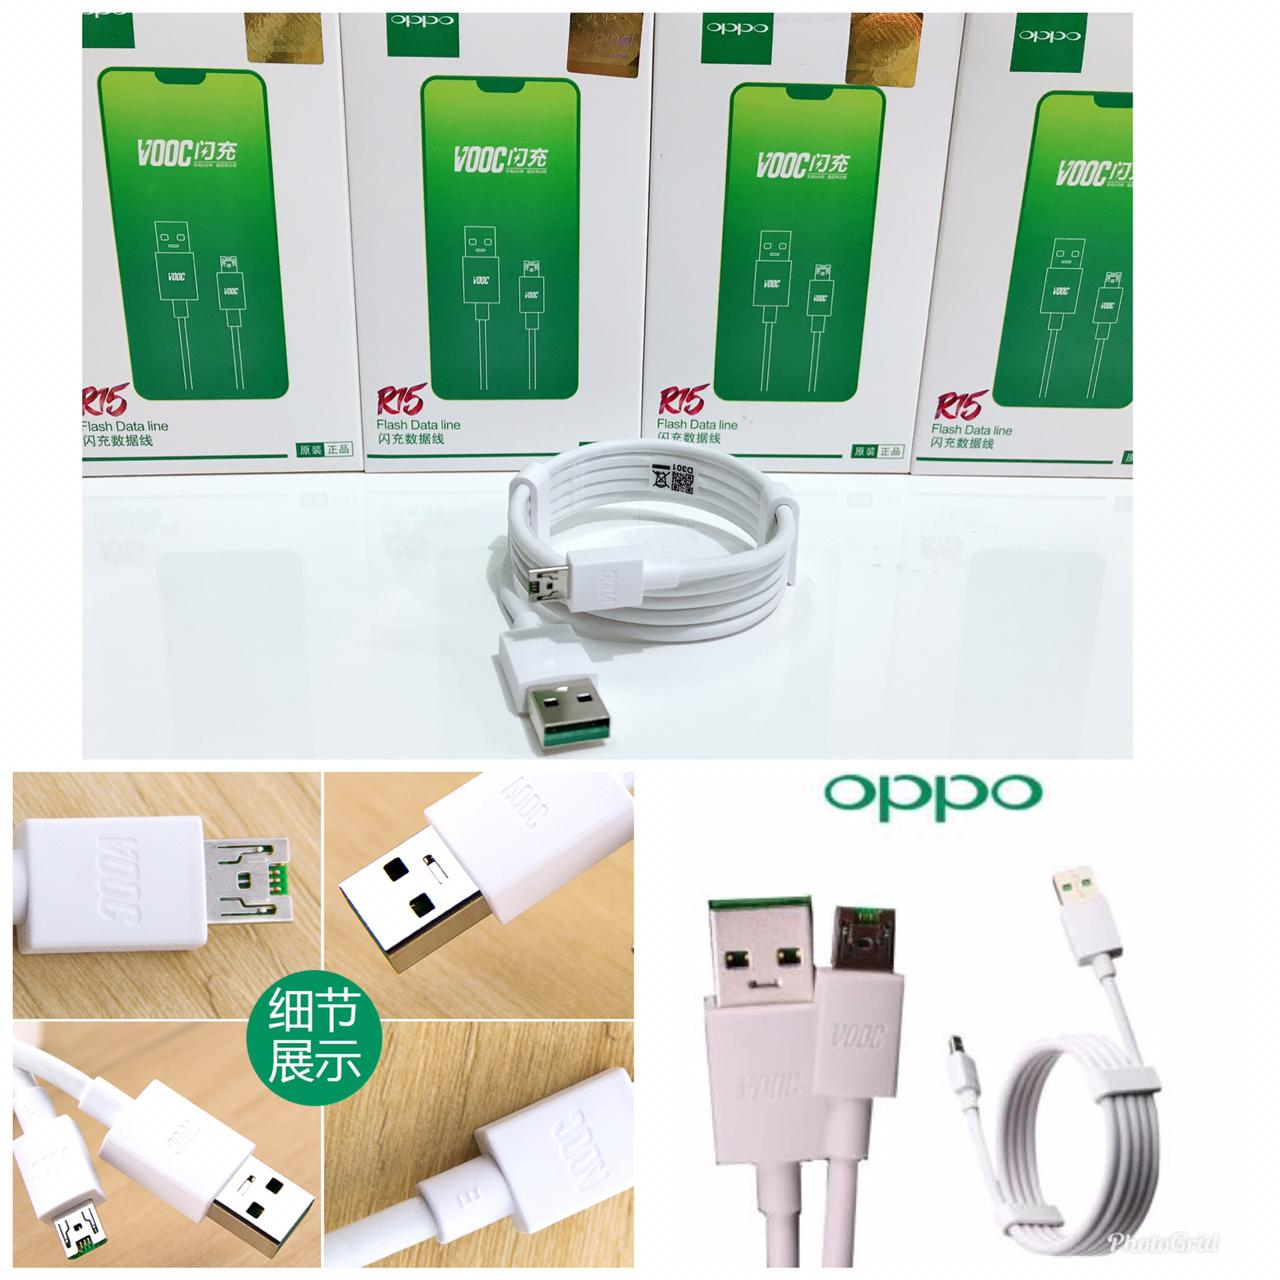 Kabel Data Oppo Ori R15 Fast Charging